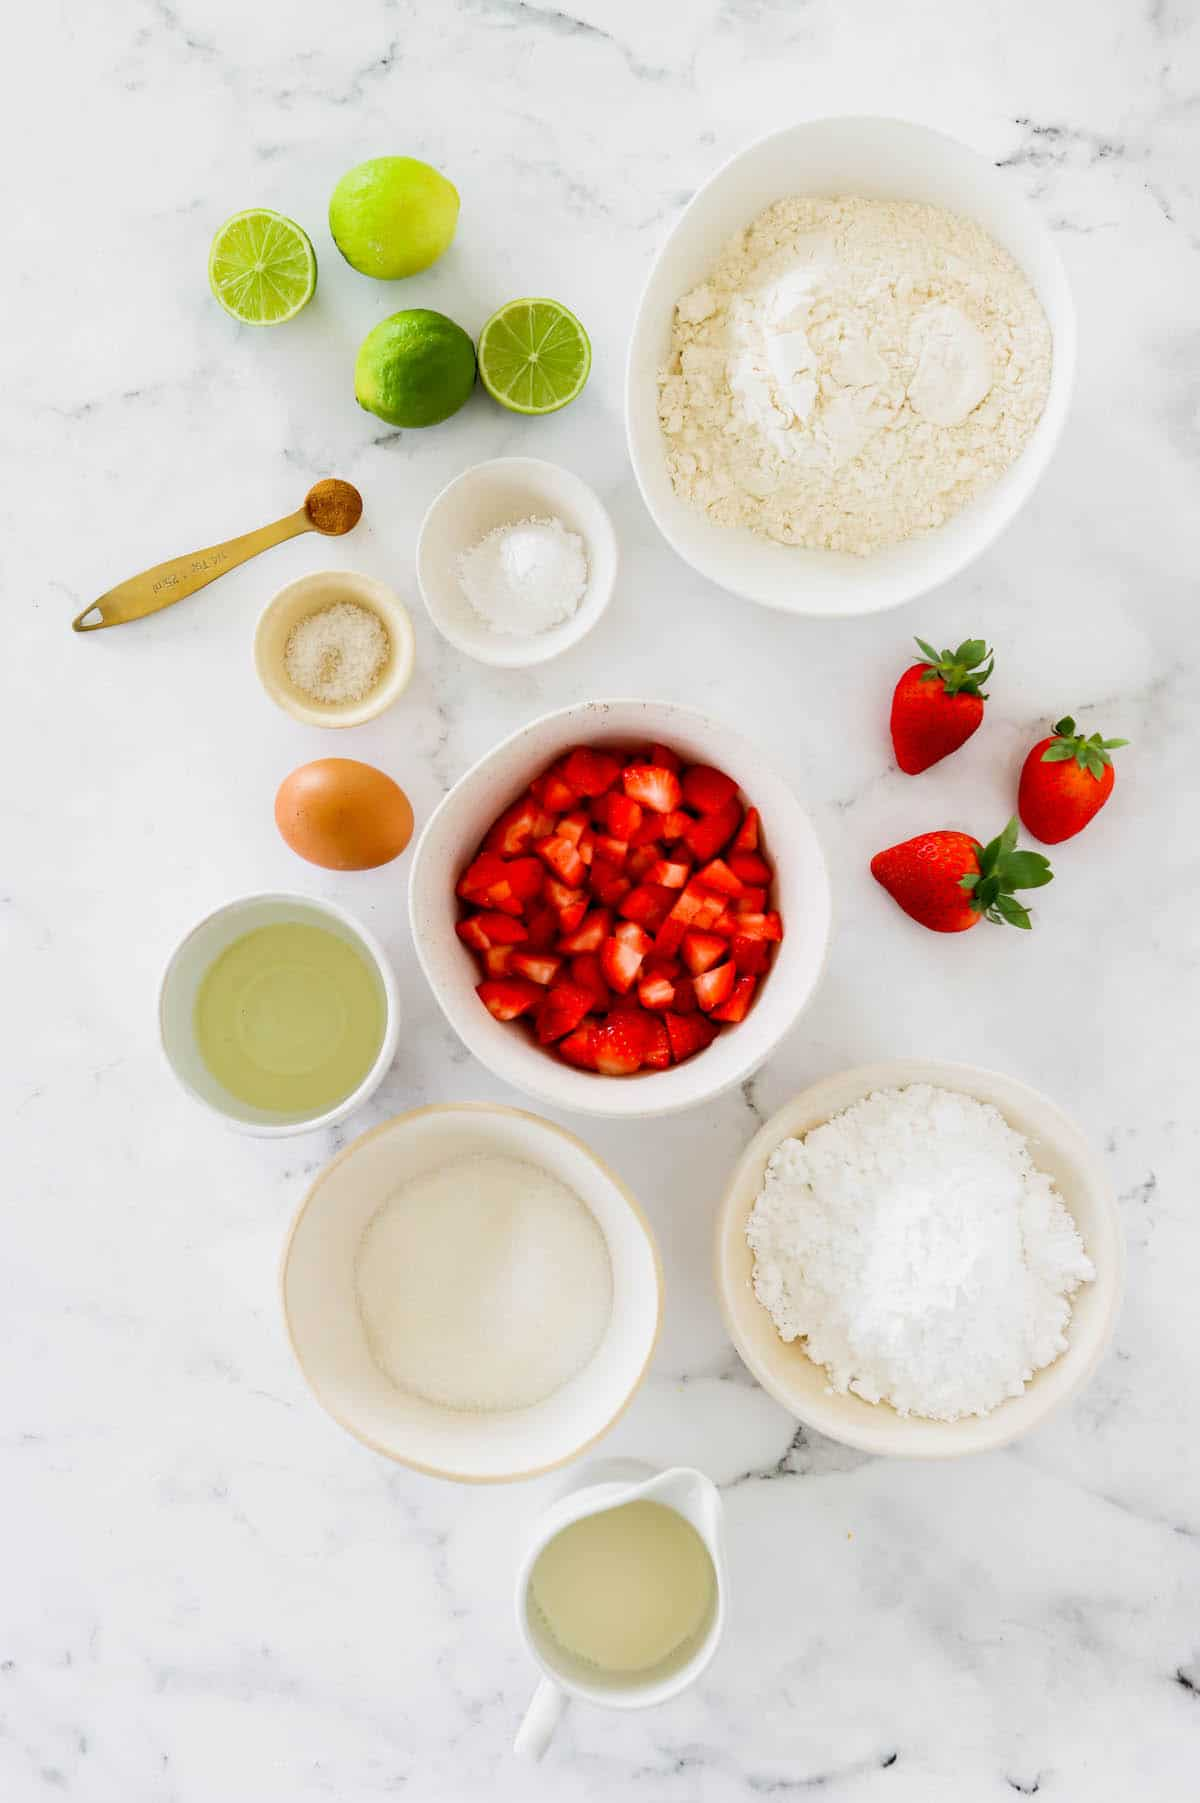 Overhead view of homemade strawberry muffin ingredients